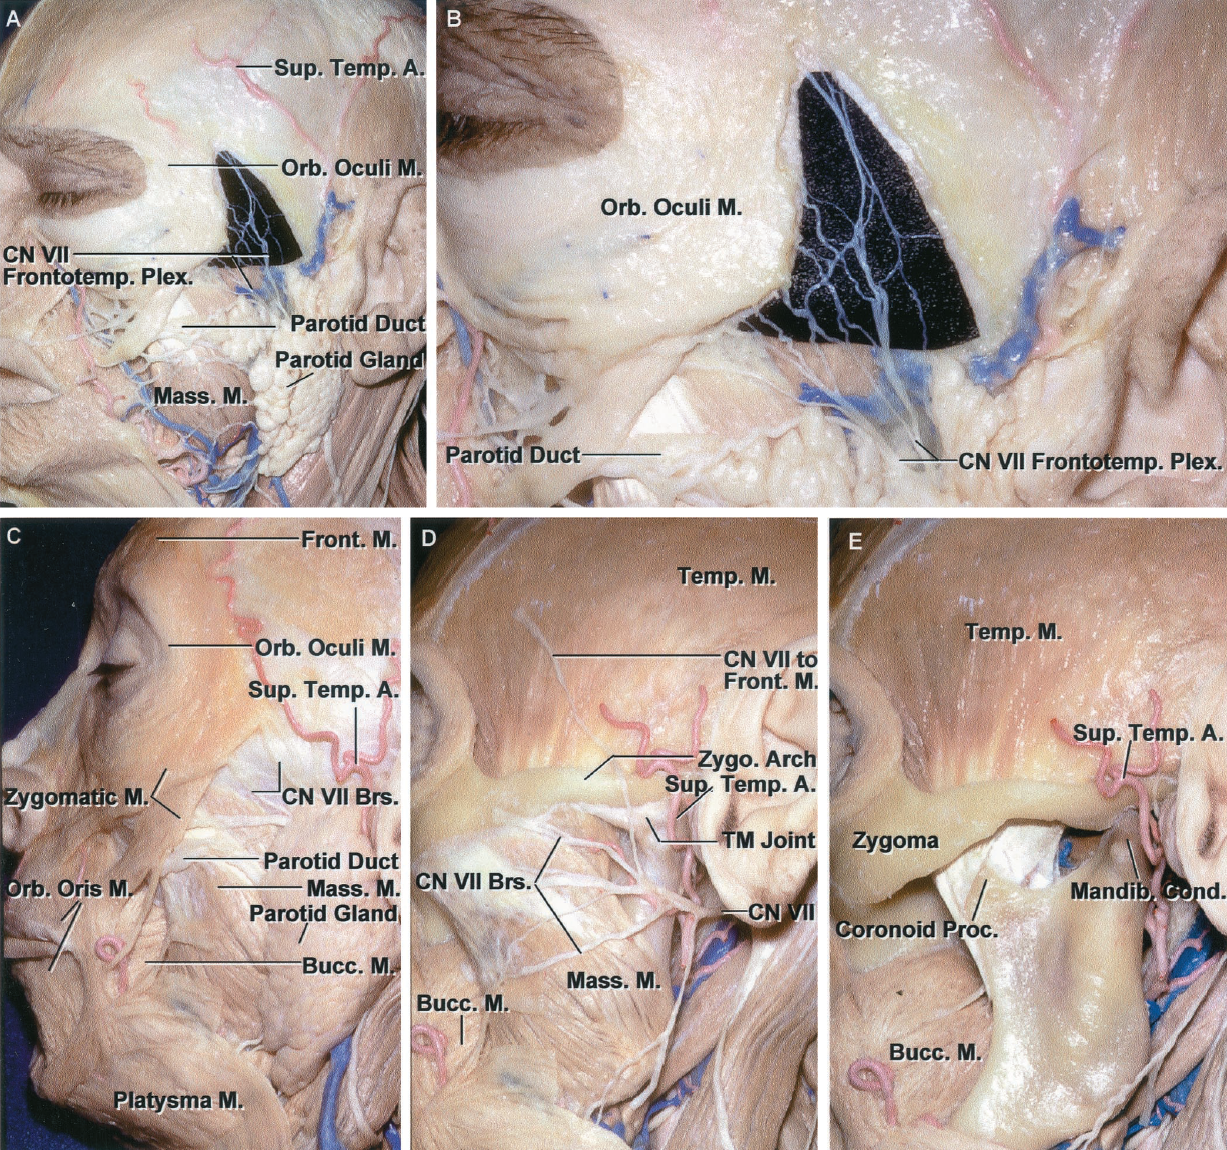 FIGURE 6.9. A-E. A, the branches of the facial nerve, which form a fine plexus in the fat pad overlying the temporalis fascia and are directed to the orbicularis oculi and frontalis muscle, have been dissected free and a small piece of black material placed deep to their fine branches to highlight this neural network in the fat pad. B, enlarged view of the facial nerve plexus innervating the orbicularis oculi and frontalis muscle. C, lateral view of the structures superficial to the anterior and middle cranial base. The frontotemporal and zygomatic branches of the facial nerve are exposed anterior to the parotid gland. The orbicularis oculi surrounds the orbit, and the frontalis muscle extends upward from the superior orbital rim. The levators of the lip and zygomaticus muscles are located in front of the maxilla. The orbicularis oris surrounds the mouth and the buccinator muscle surrounds the oral cavity deep to the masseter muscle. The parotid duct crosses the masseter muscle. The superficial temporal artery divides into anterior and posterior branches. The parotid gland has been removed to show the branches of the facial nerve. D, the parotid gland has been removed to expose the facial nerve exiting the stylomastoid foramen. The facial nerve branch to the frontalis muscle has been preserved in the dissection and has been laid back against the temporalis muscle to show it crossing the zygomatic arch in its course to the forehead. The superficial temporal artery passes deep to the facial nerve in front of the ear. E, the masseter muscle has been removed to expose the temporalis muscle inserting on the coronoid process. The buccinator muscle, which surrounds the oral cavity, is situated on the deep side of the masseter muscle.